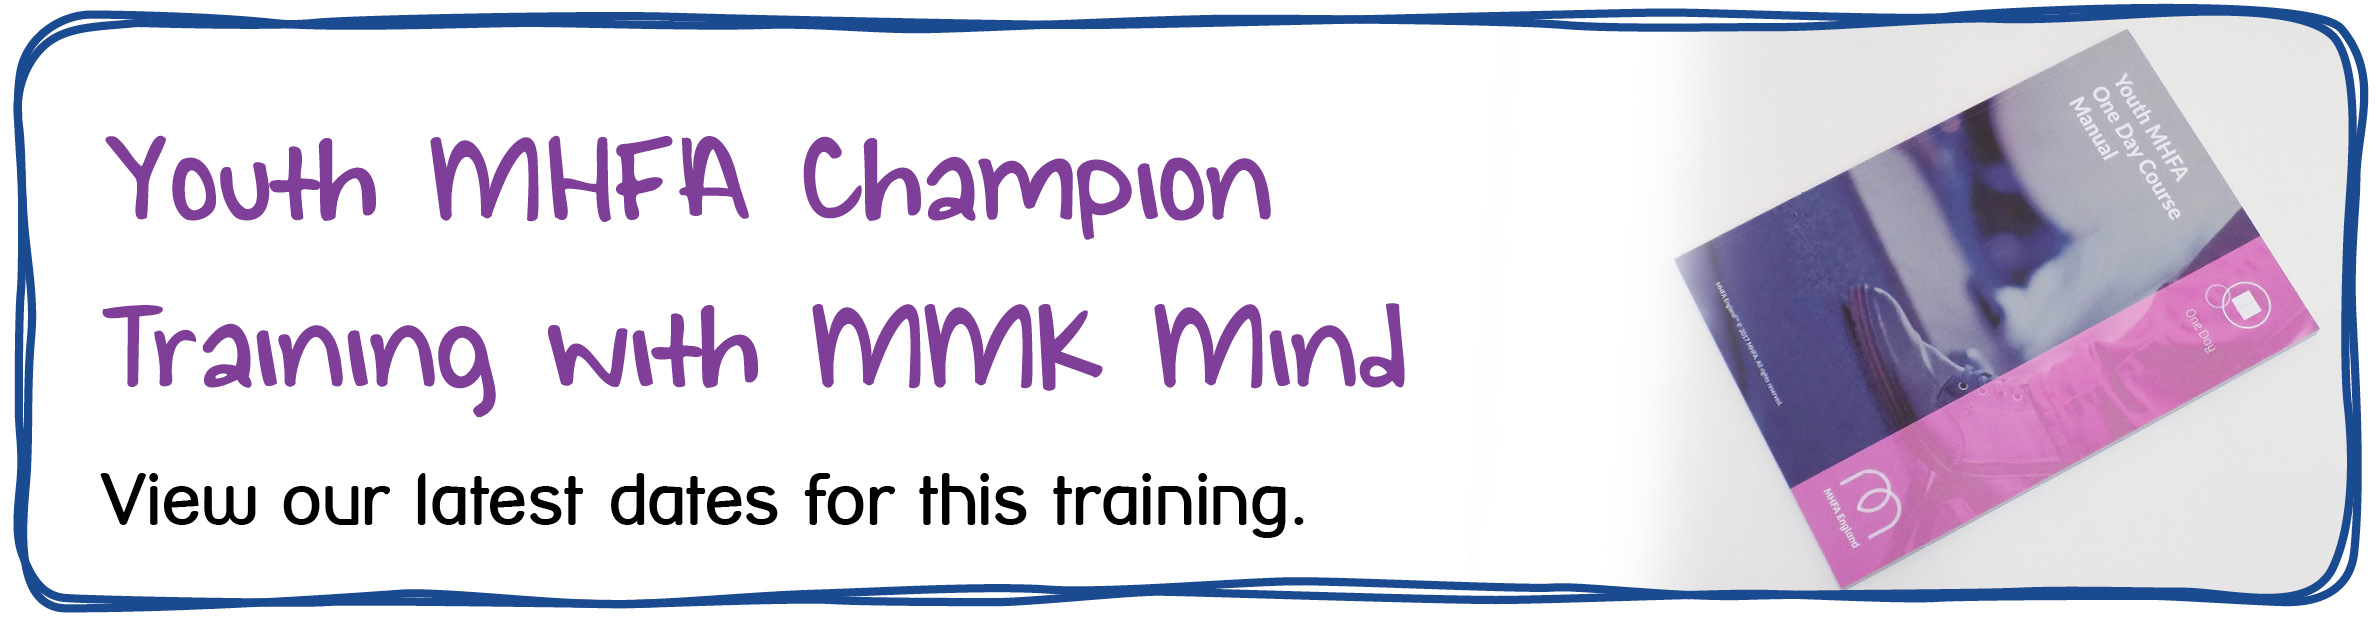 MHFA Youth Champion - Youth MHFA Champion Training with MMK Mind. View our latest dates for this training.